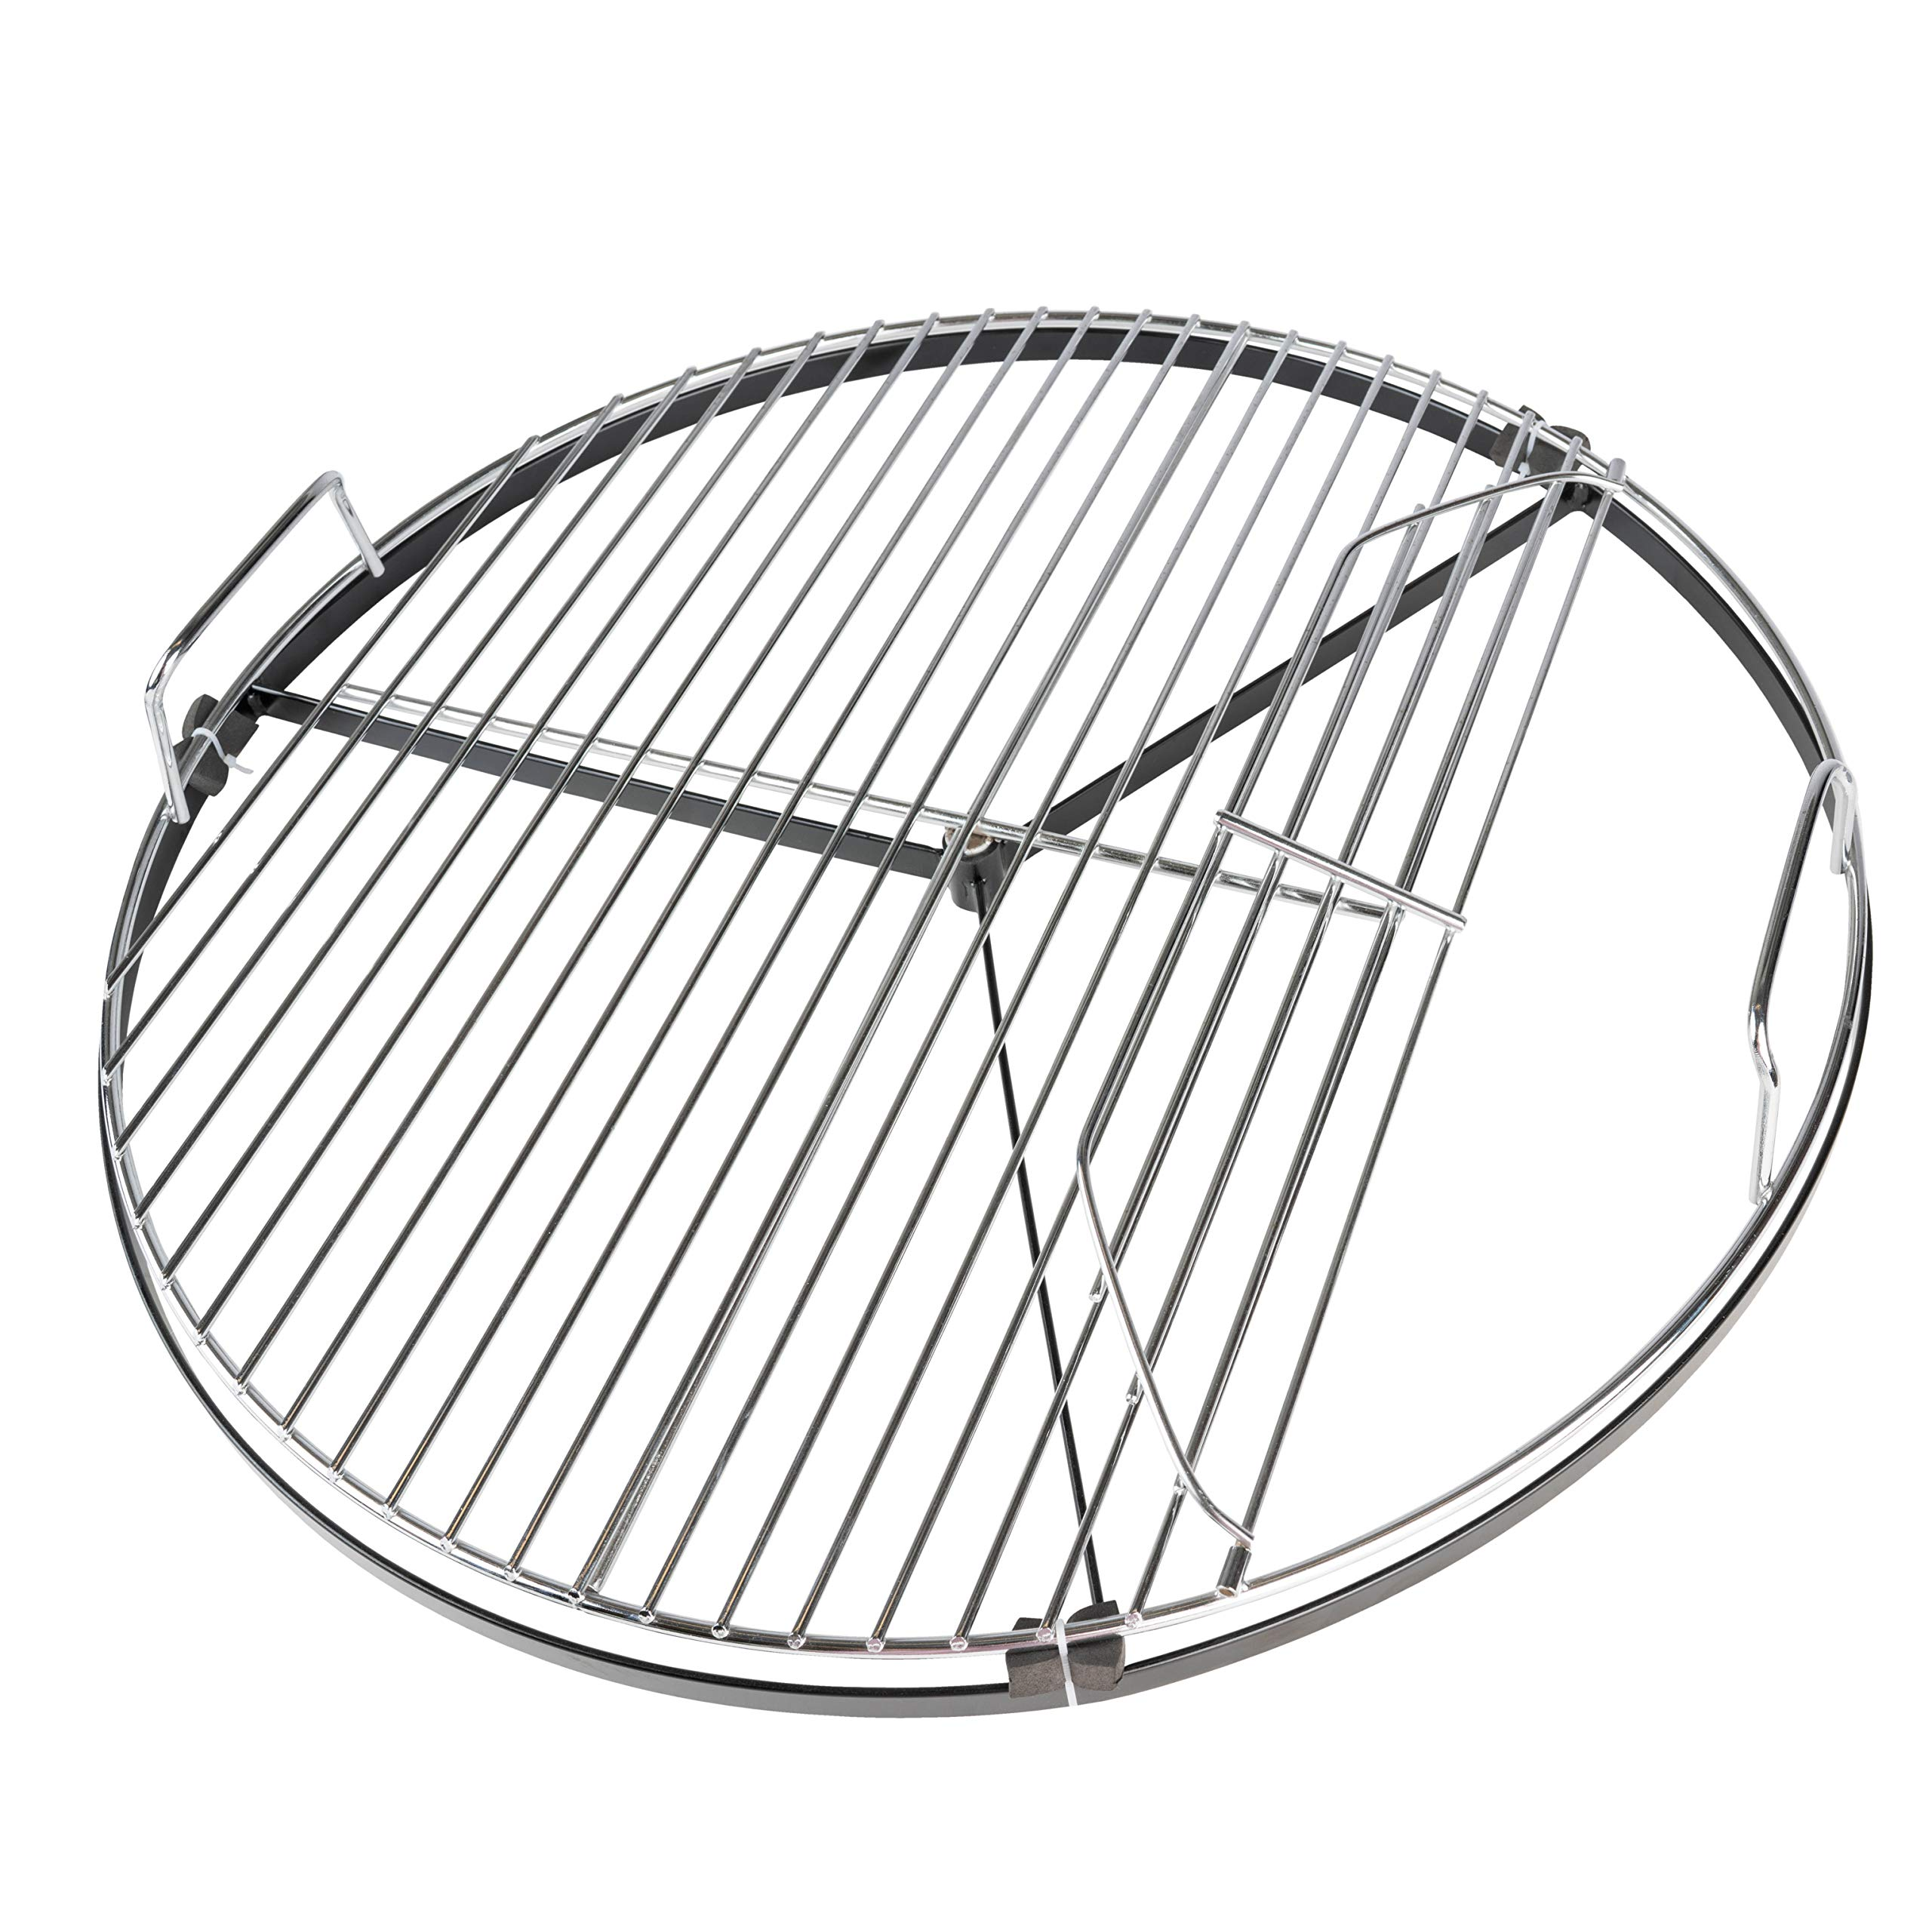 """BBQ Dragon Spin Grate Rotating Grill Grate for 22"""" Charcoal Grills - Instant Grill Grates Replacement for 22"""" Weber Grill Grate - Weber Grill Accessories from BBQ Dragon"""